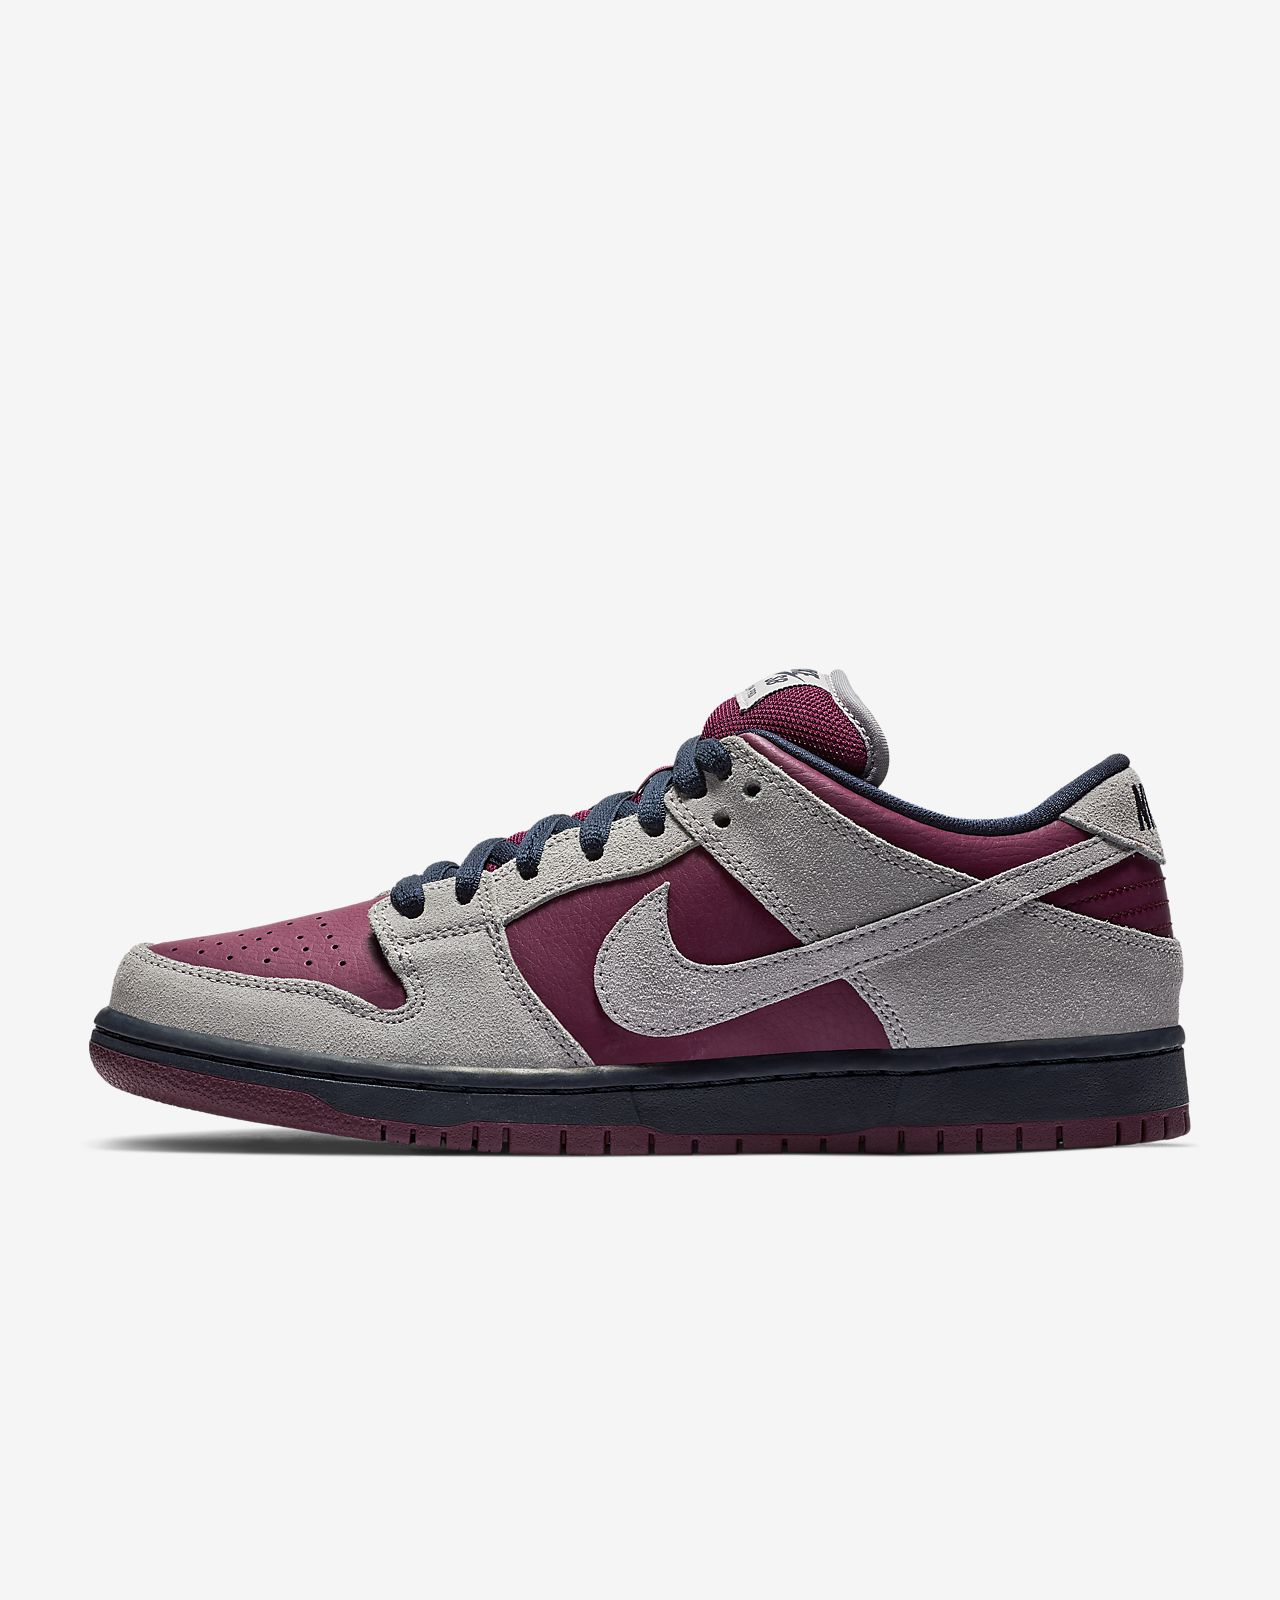 innovative design daa2a d726f Chaussure de skateboard Nike SB Dunk Low Pro. Nike.com FR